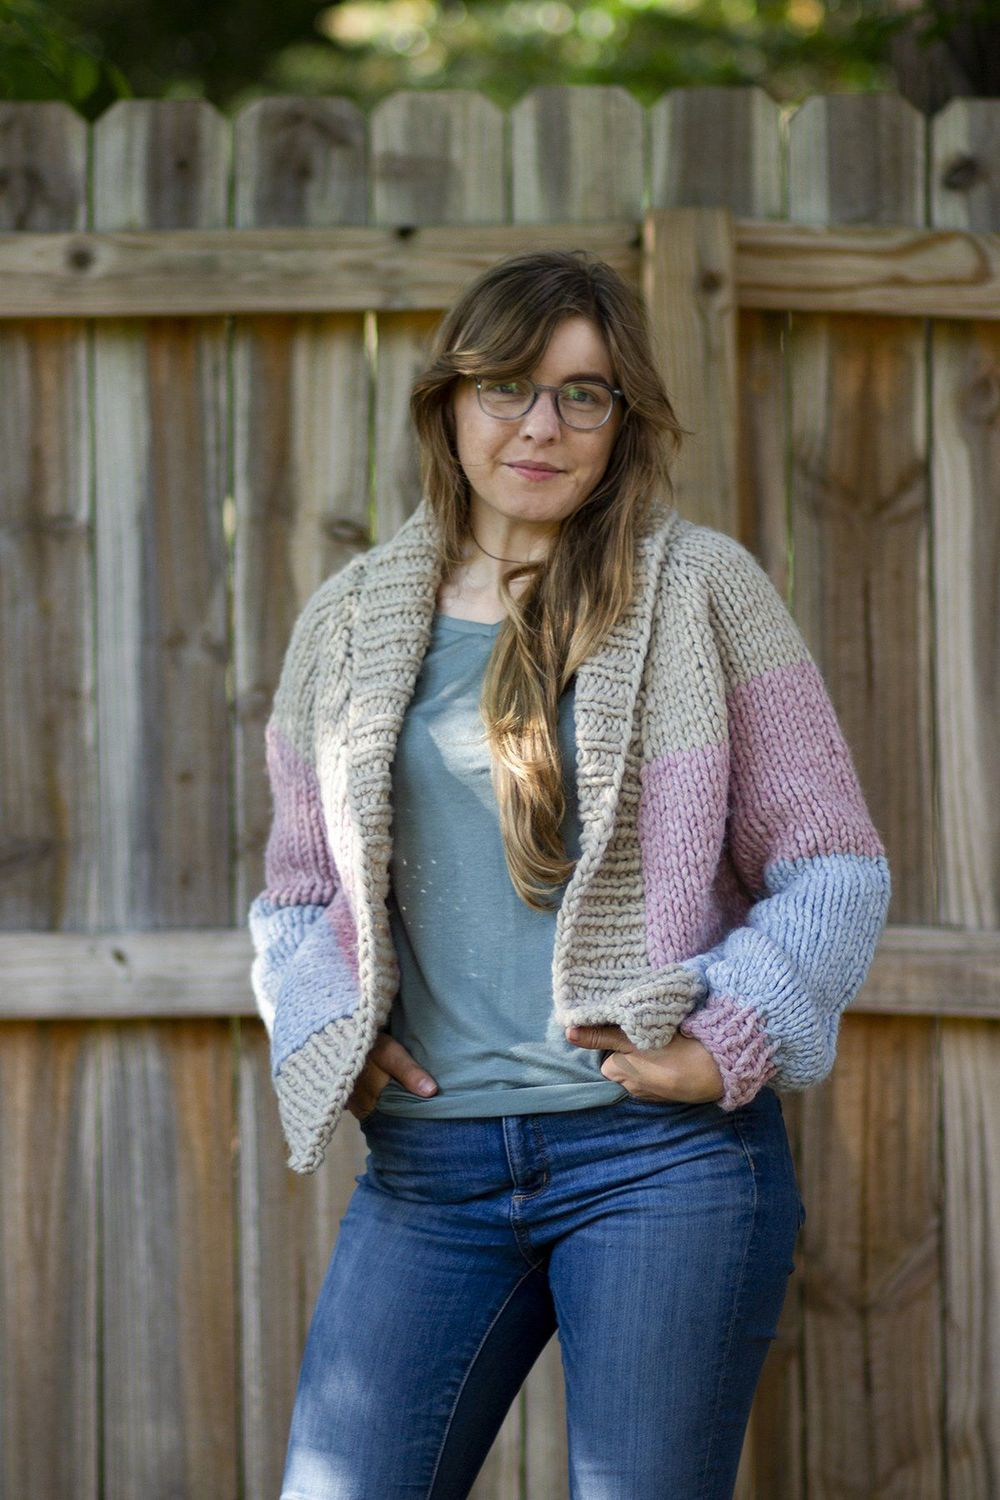 Easy-free-chunky-cardigan-knitting-pattern ⋆ Knitting Bee